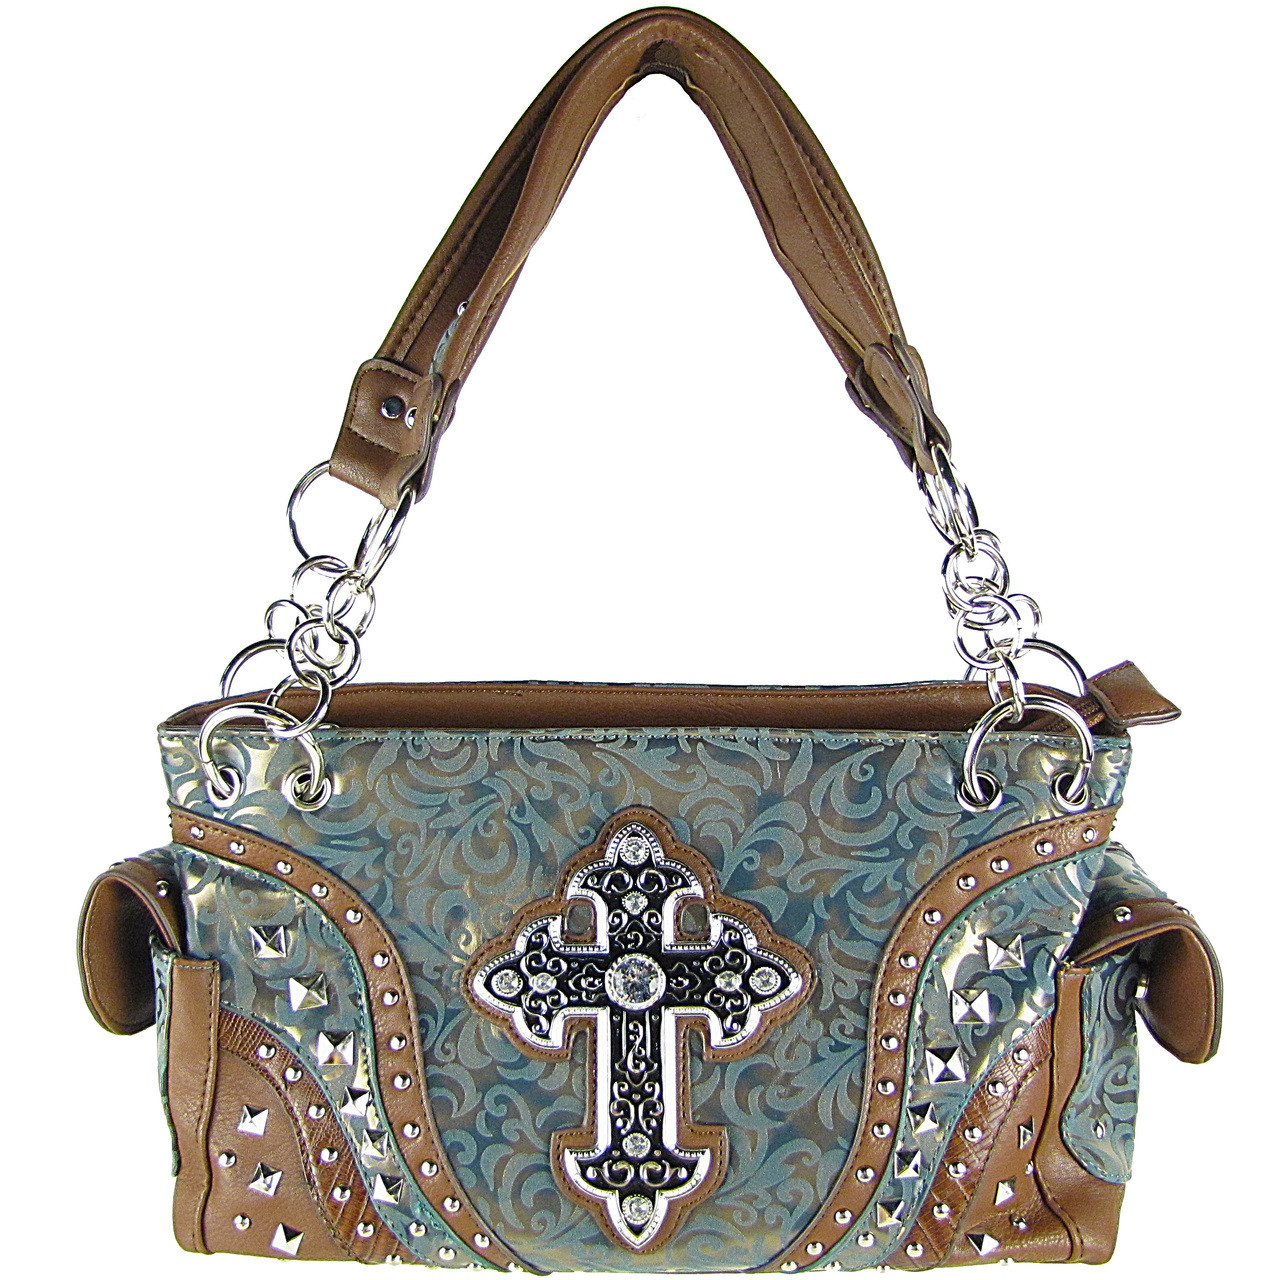 TEAL METALLIC PAISLEY STUDDED RHINESTONE CROSS LOOK SHOULDER HANDBAG HB1-90LCRTEL